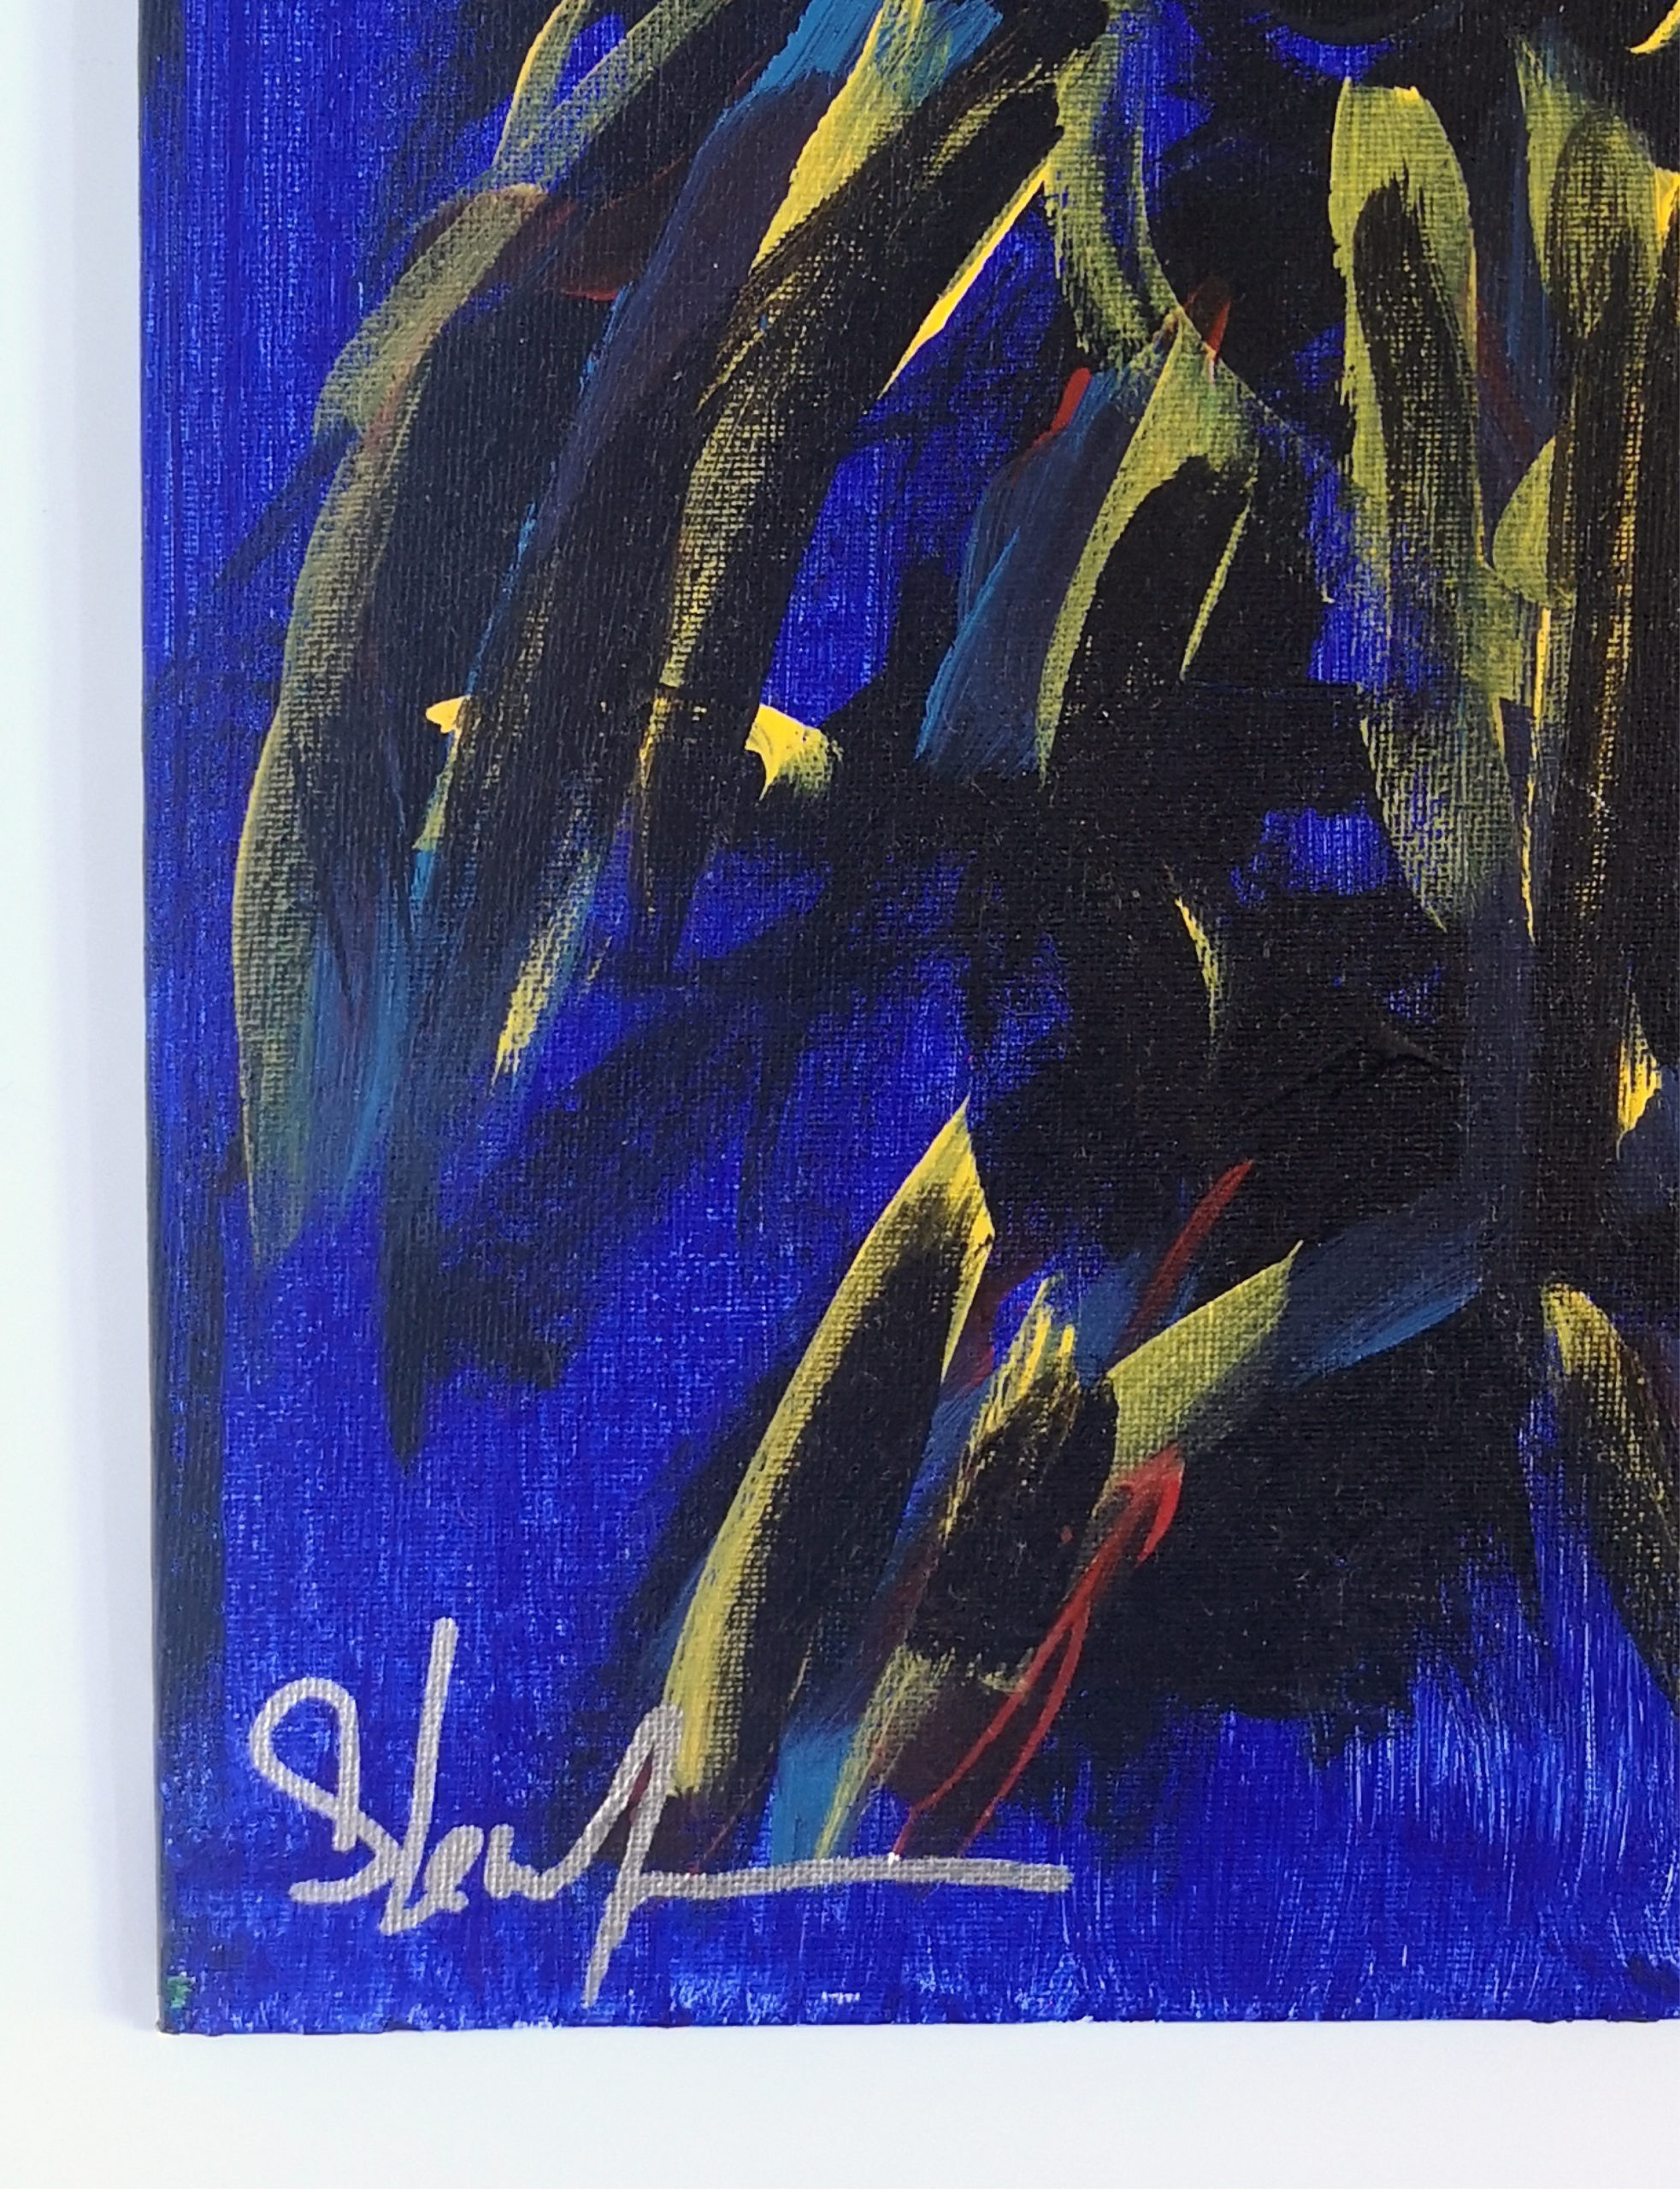 original painting by Steve Wynn of The Dream Syndicate - signed artwork